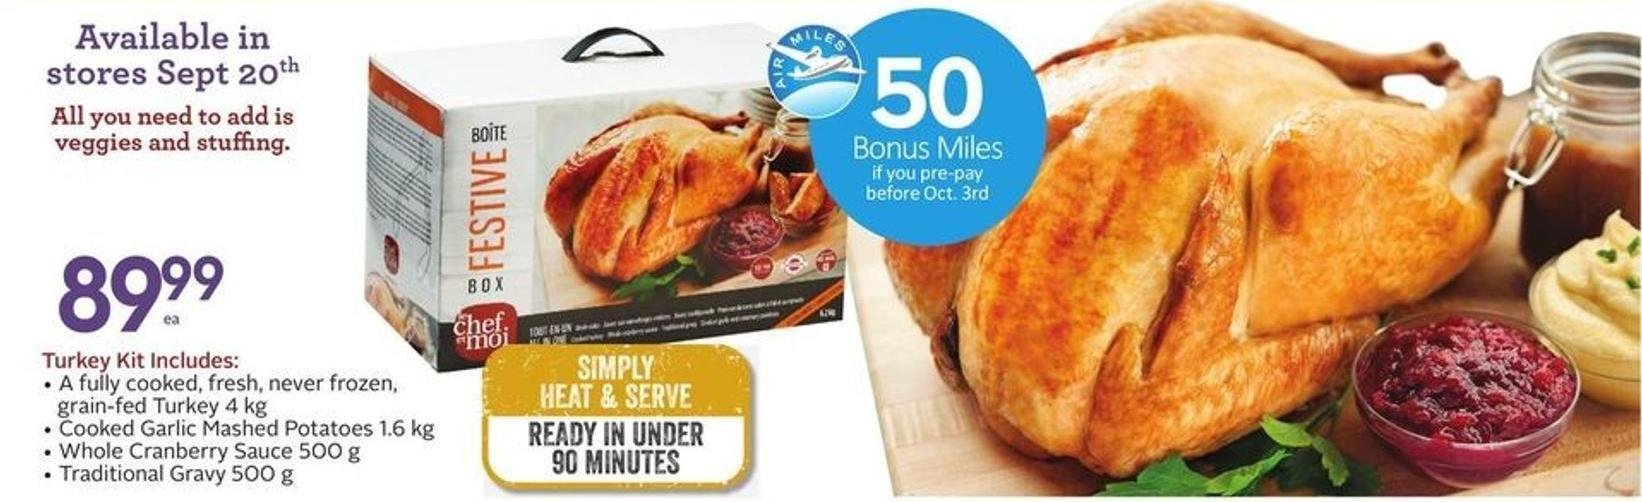 Turkey Kit - 50 Air Miles Bonus Miles